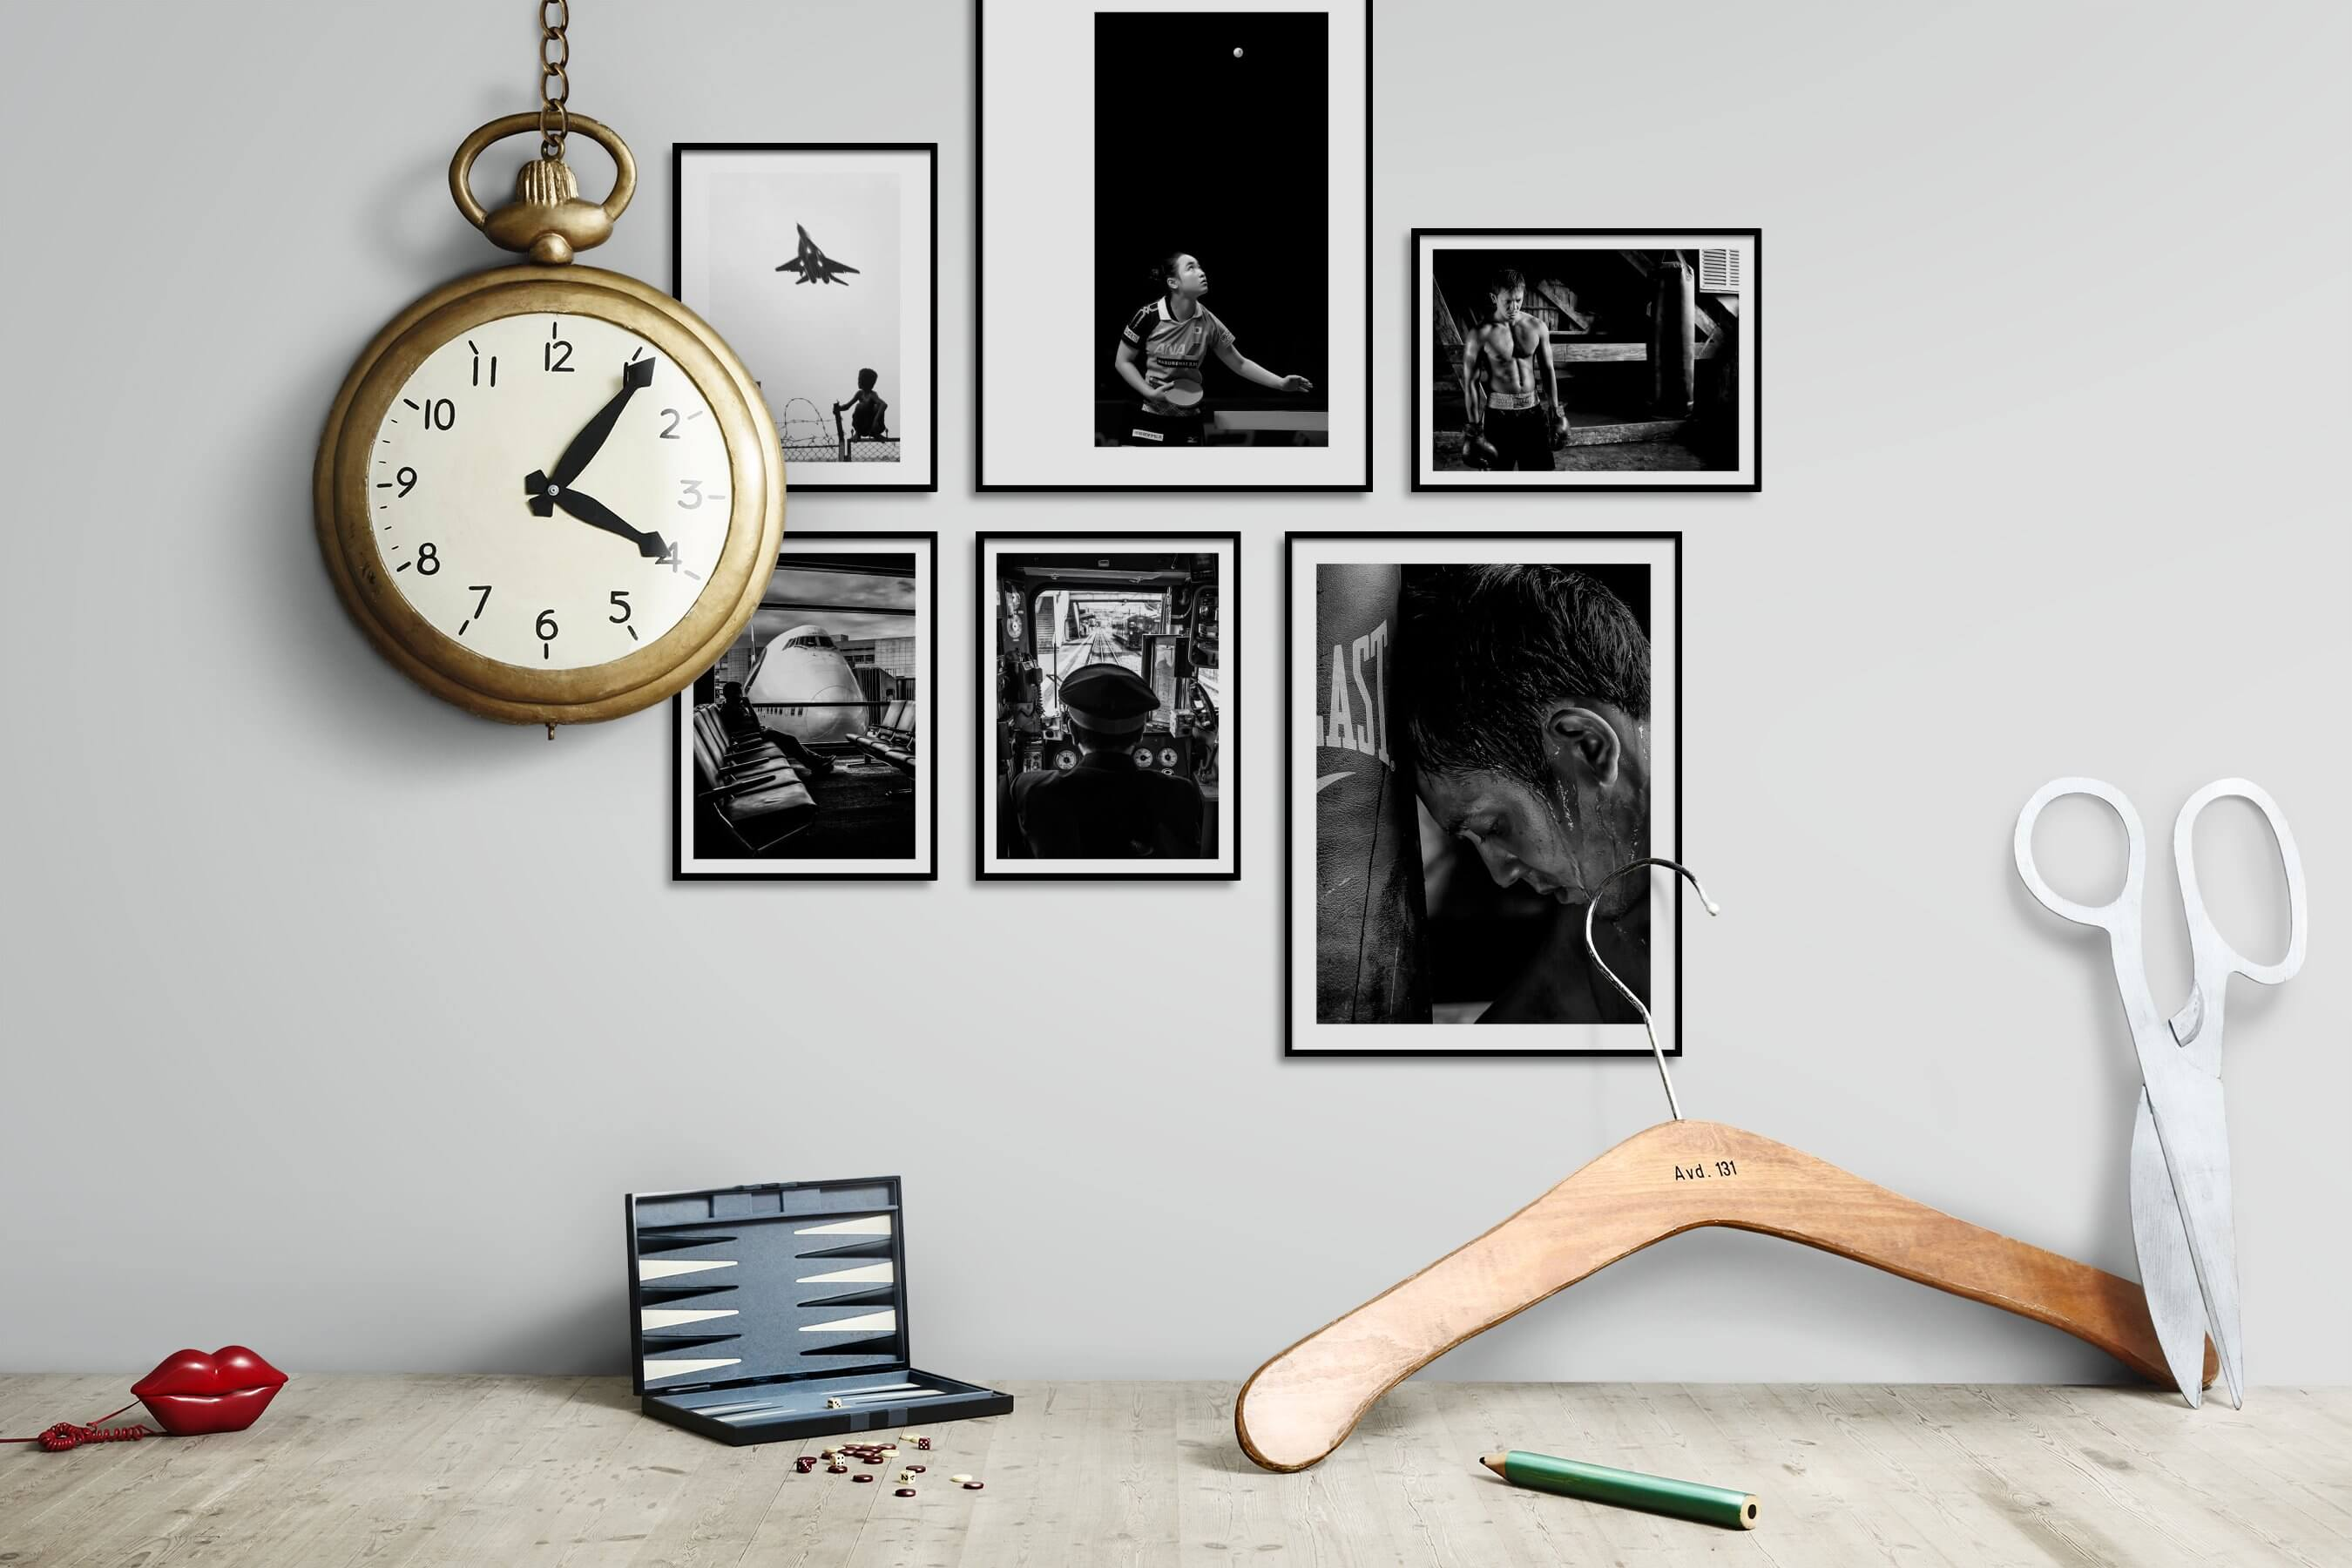 Gallery wall idea with six framed pictures arranged on a wall depicting Black & White, For the Minimalist, City Life, Vintage, and Fashion & Beauty